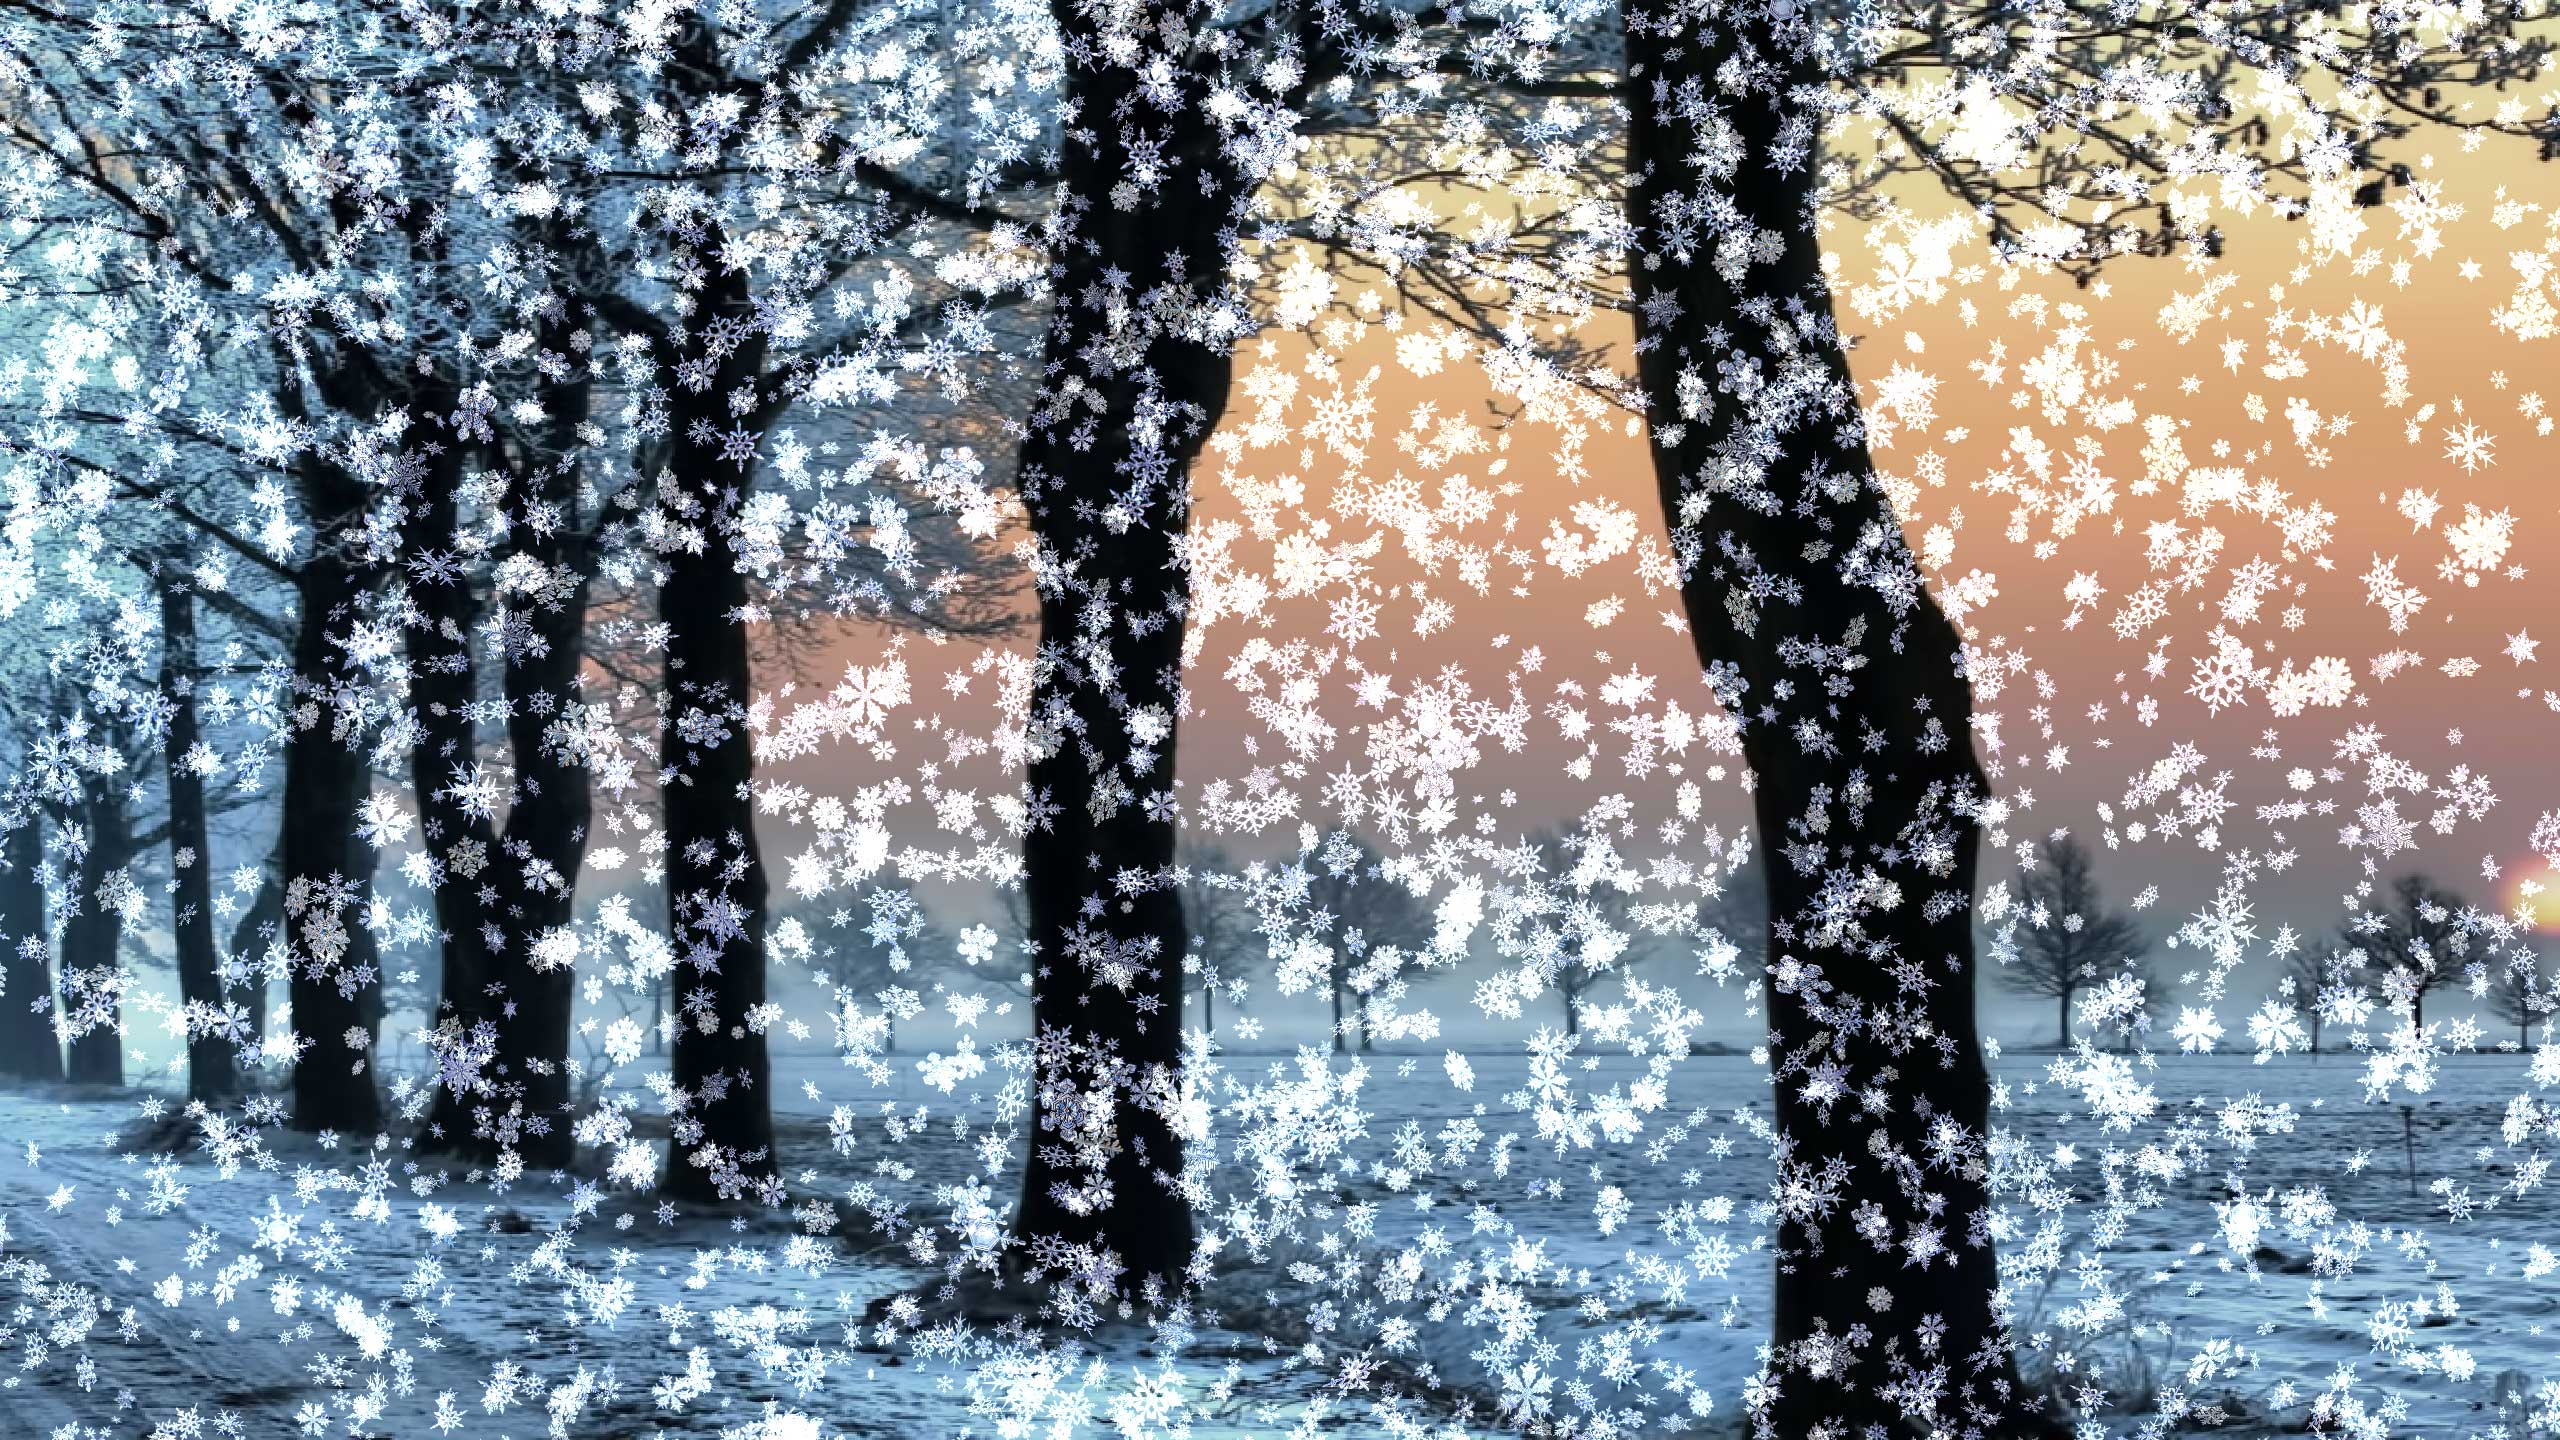 Snowy Desktop 3D Animated Background